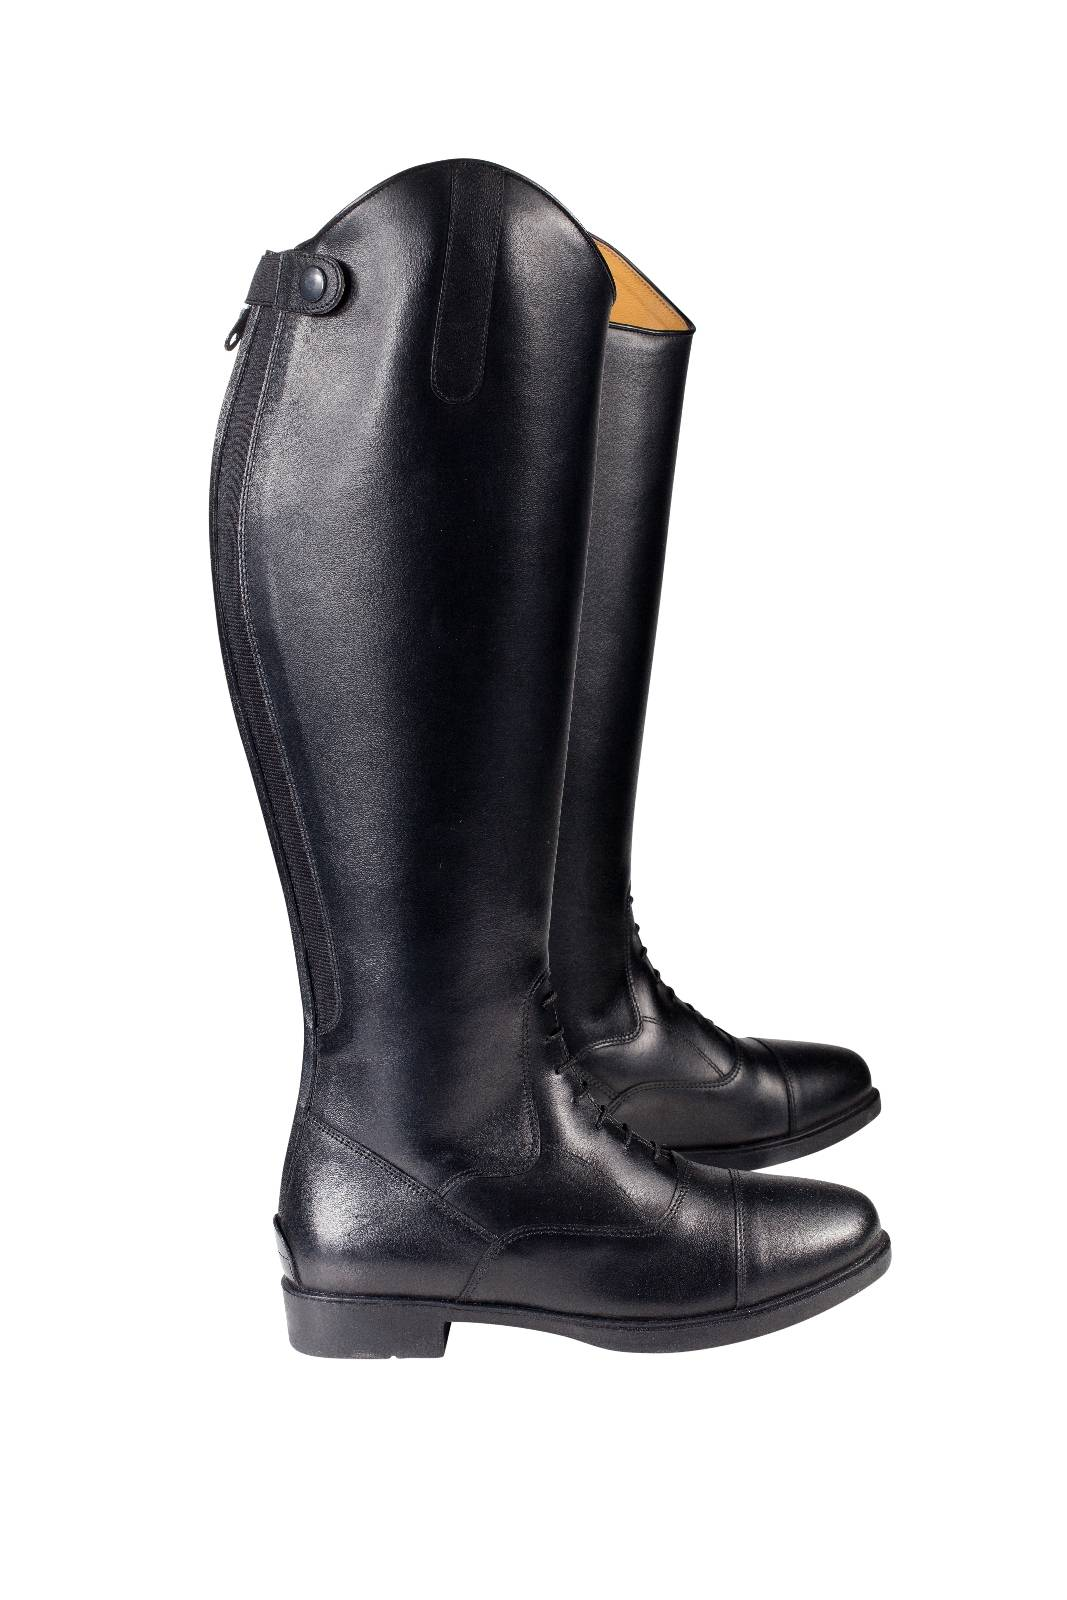 Horze Santiago Junior Tallboots